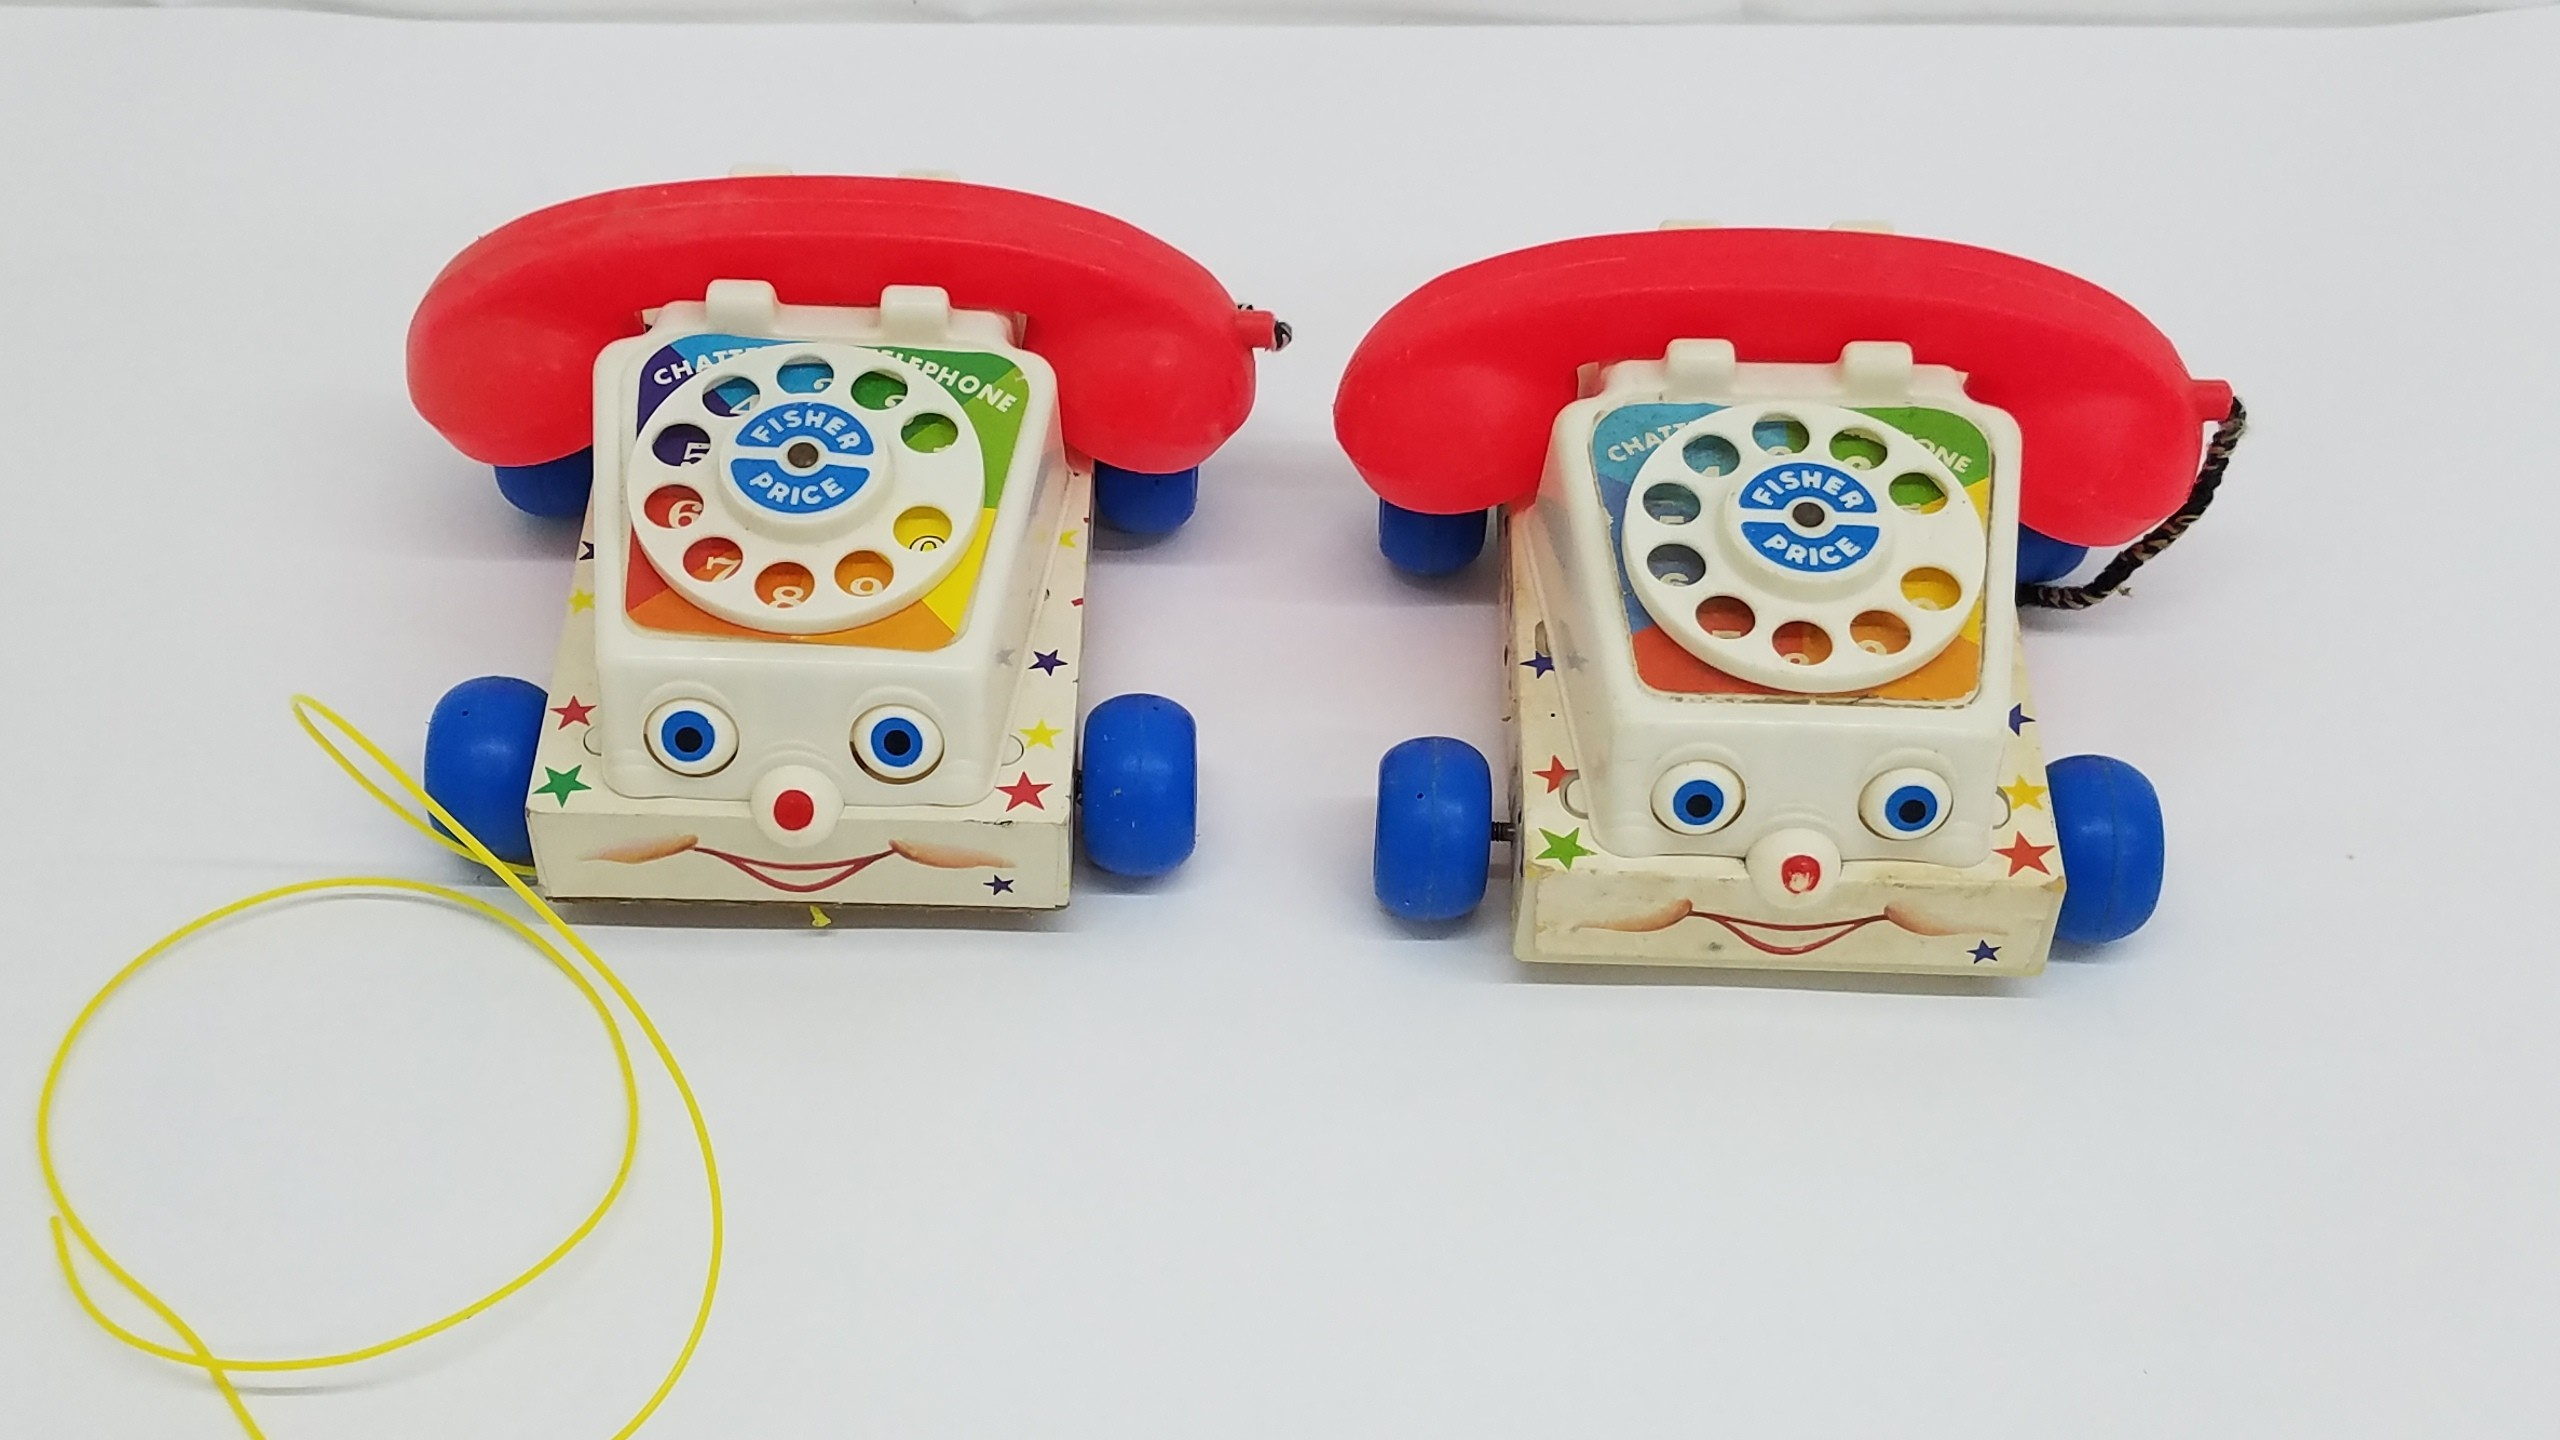 2 Fischer Price 747 Chatter Telephones 1 Wood and 1 Plastic Base